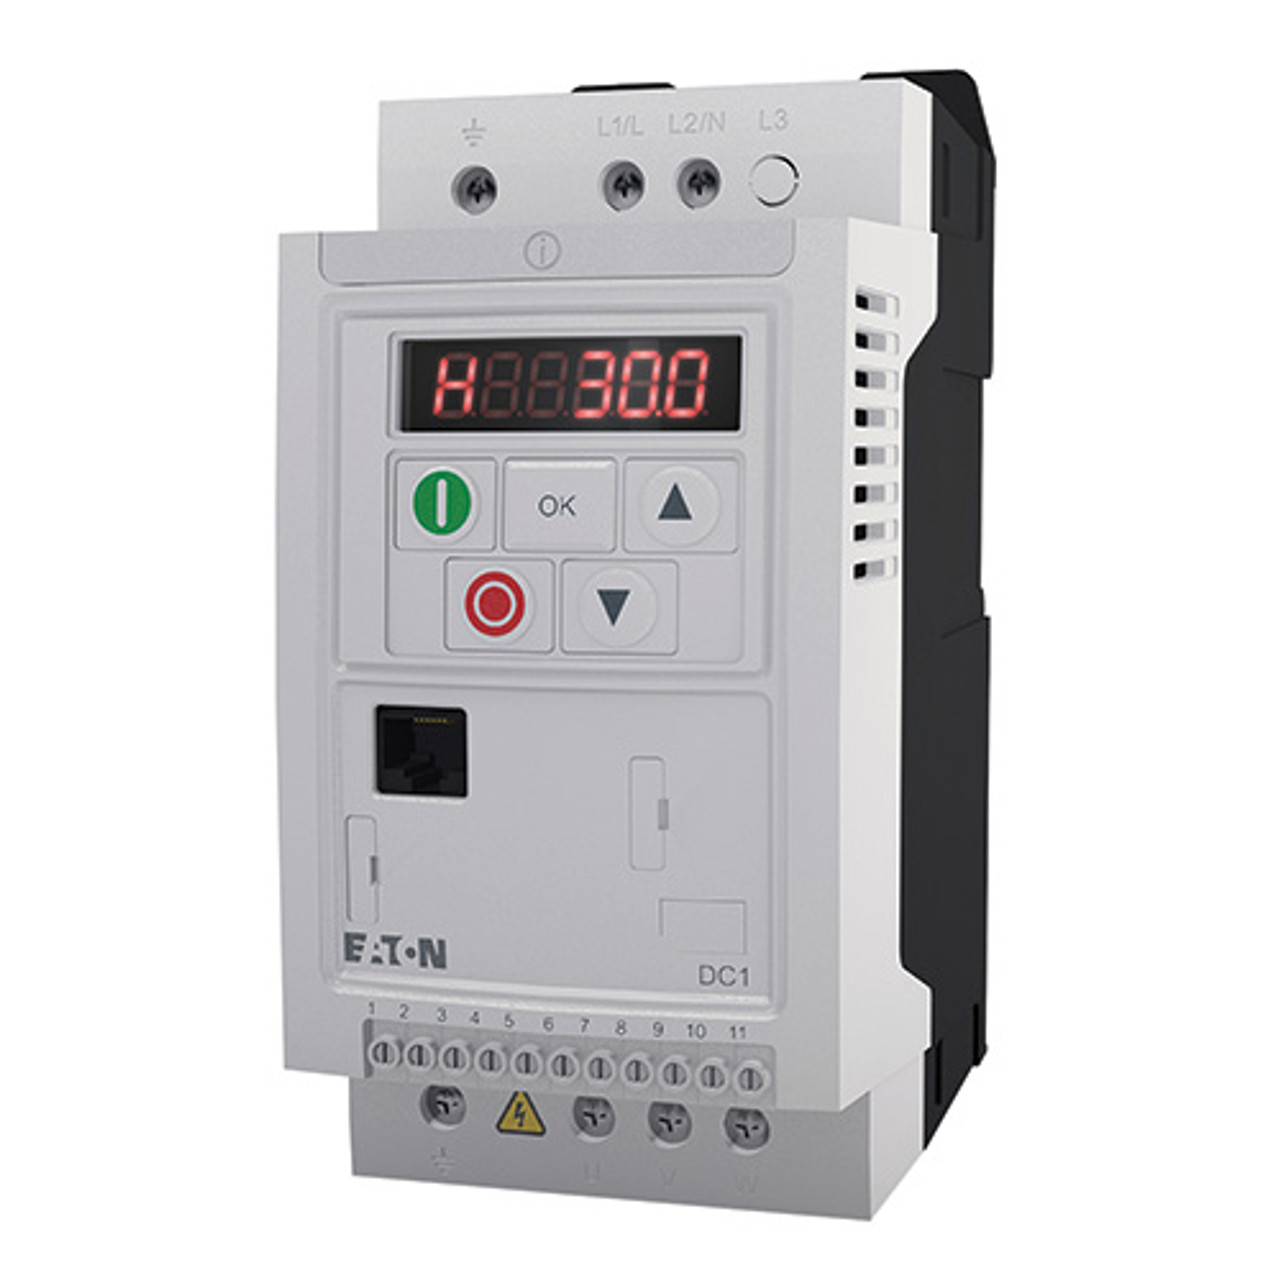 2HP 230V 1PH In / 230 3PH Out, IP20 DC1 VFD